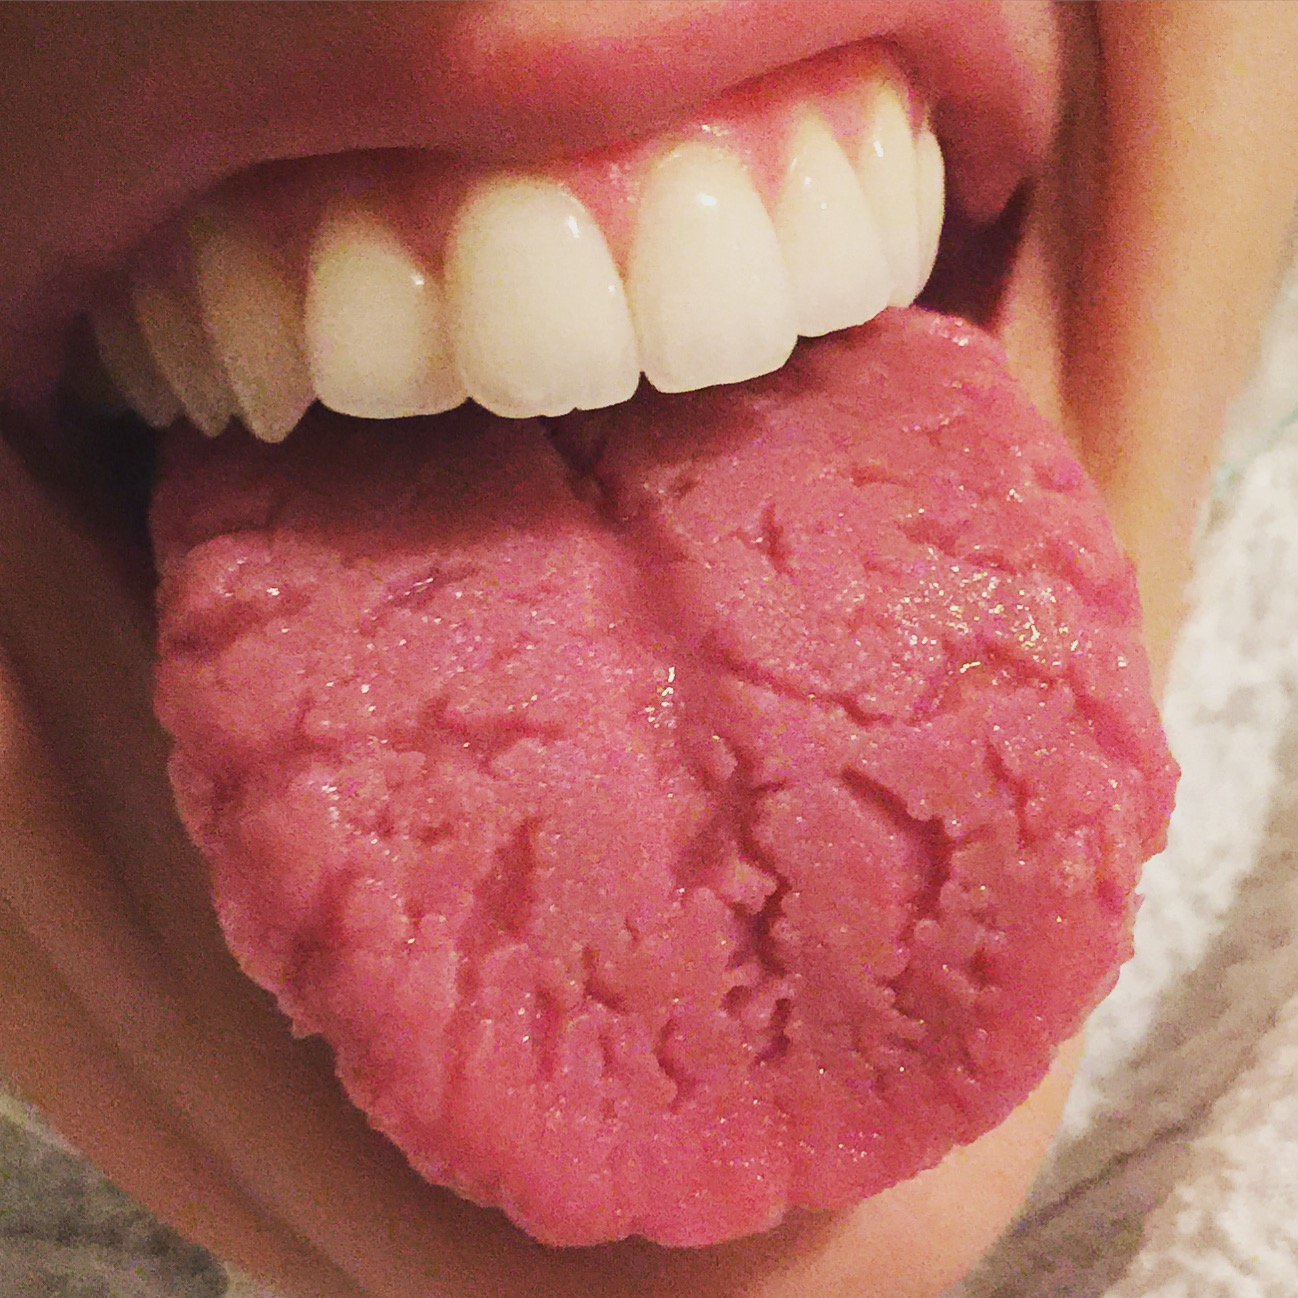 Fissured Tongue: Causes, Symptoms and Treatments